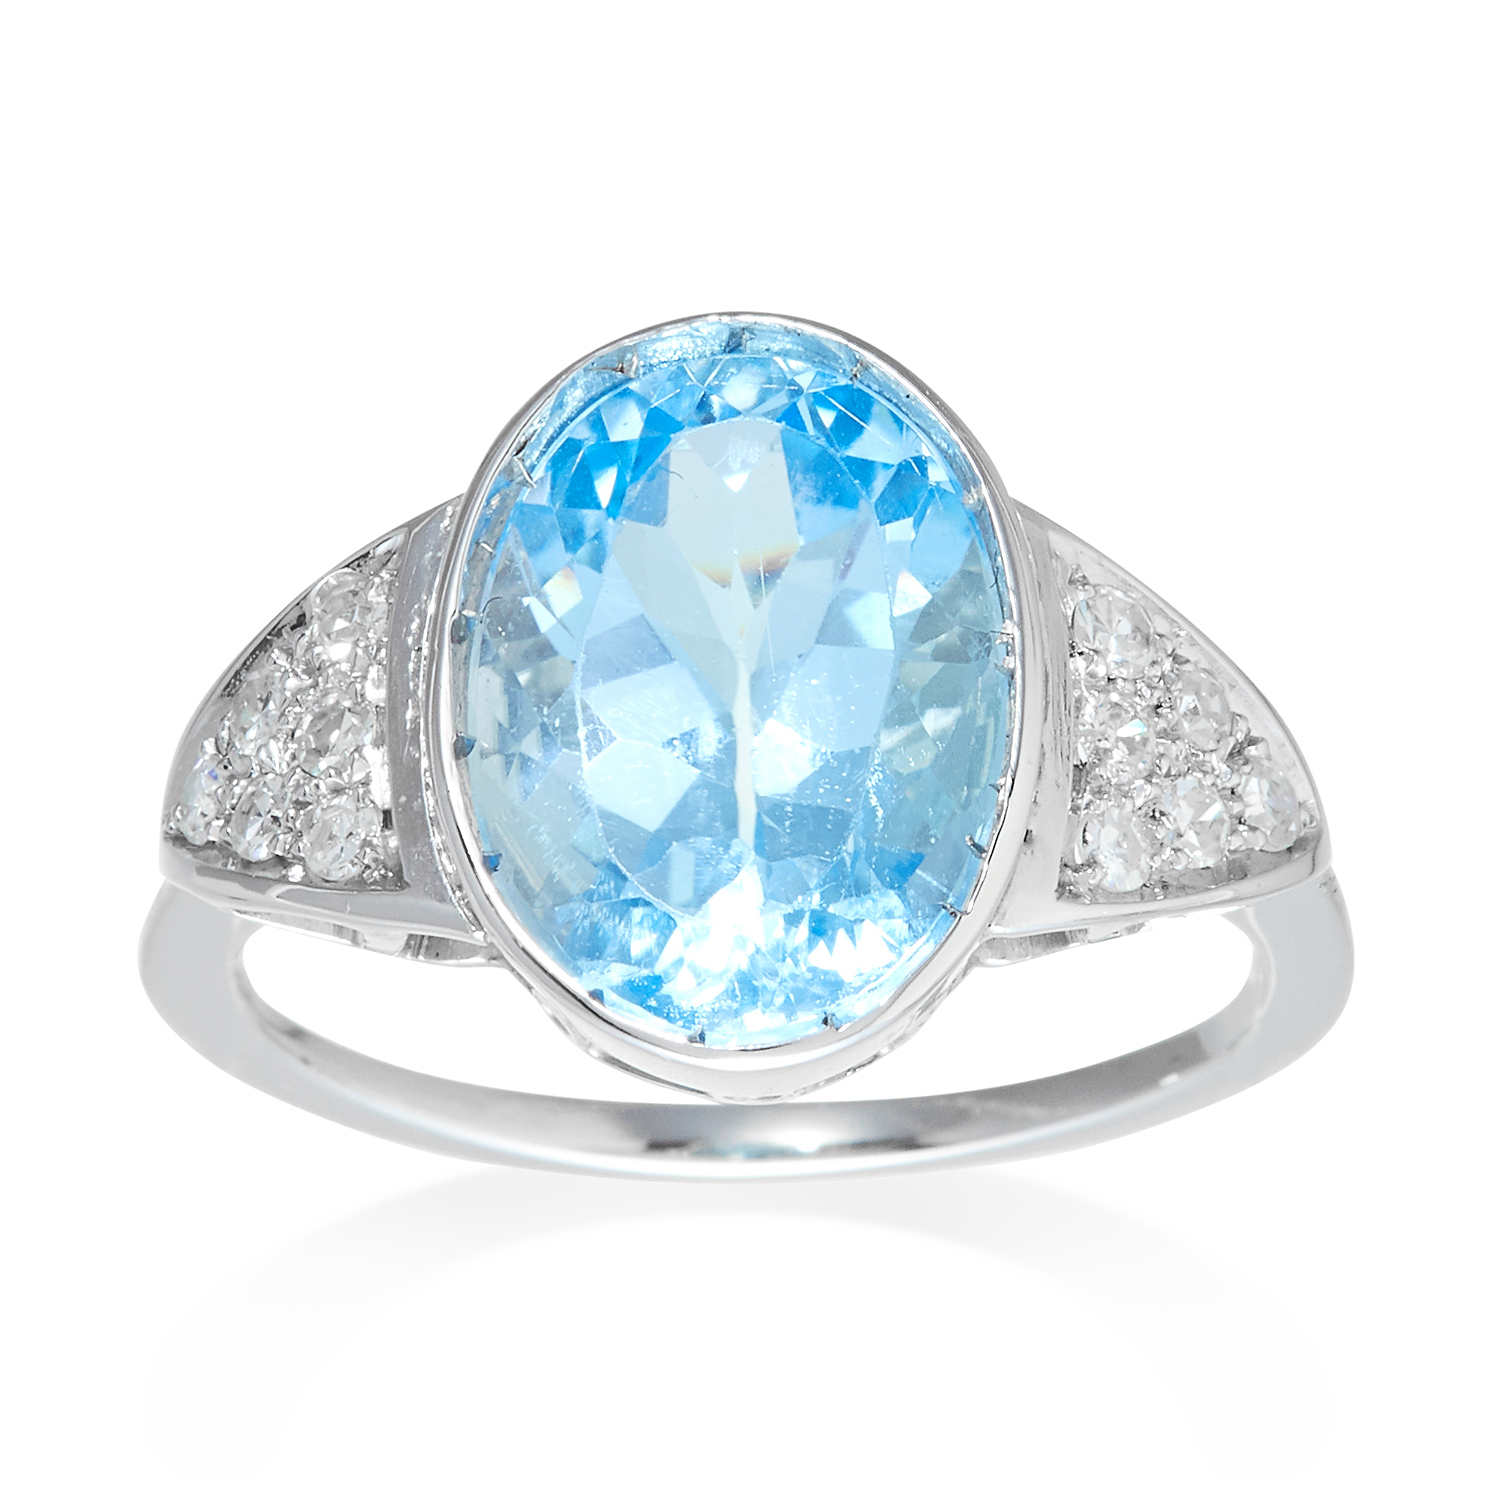 Los 316 - AN AQUAMARINE AND DIAMOND RING in platinum or white gold, the oval cut aquamarine of 6.09 carats